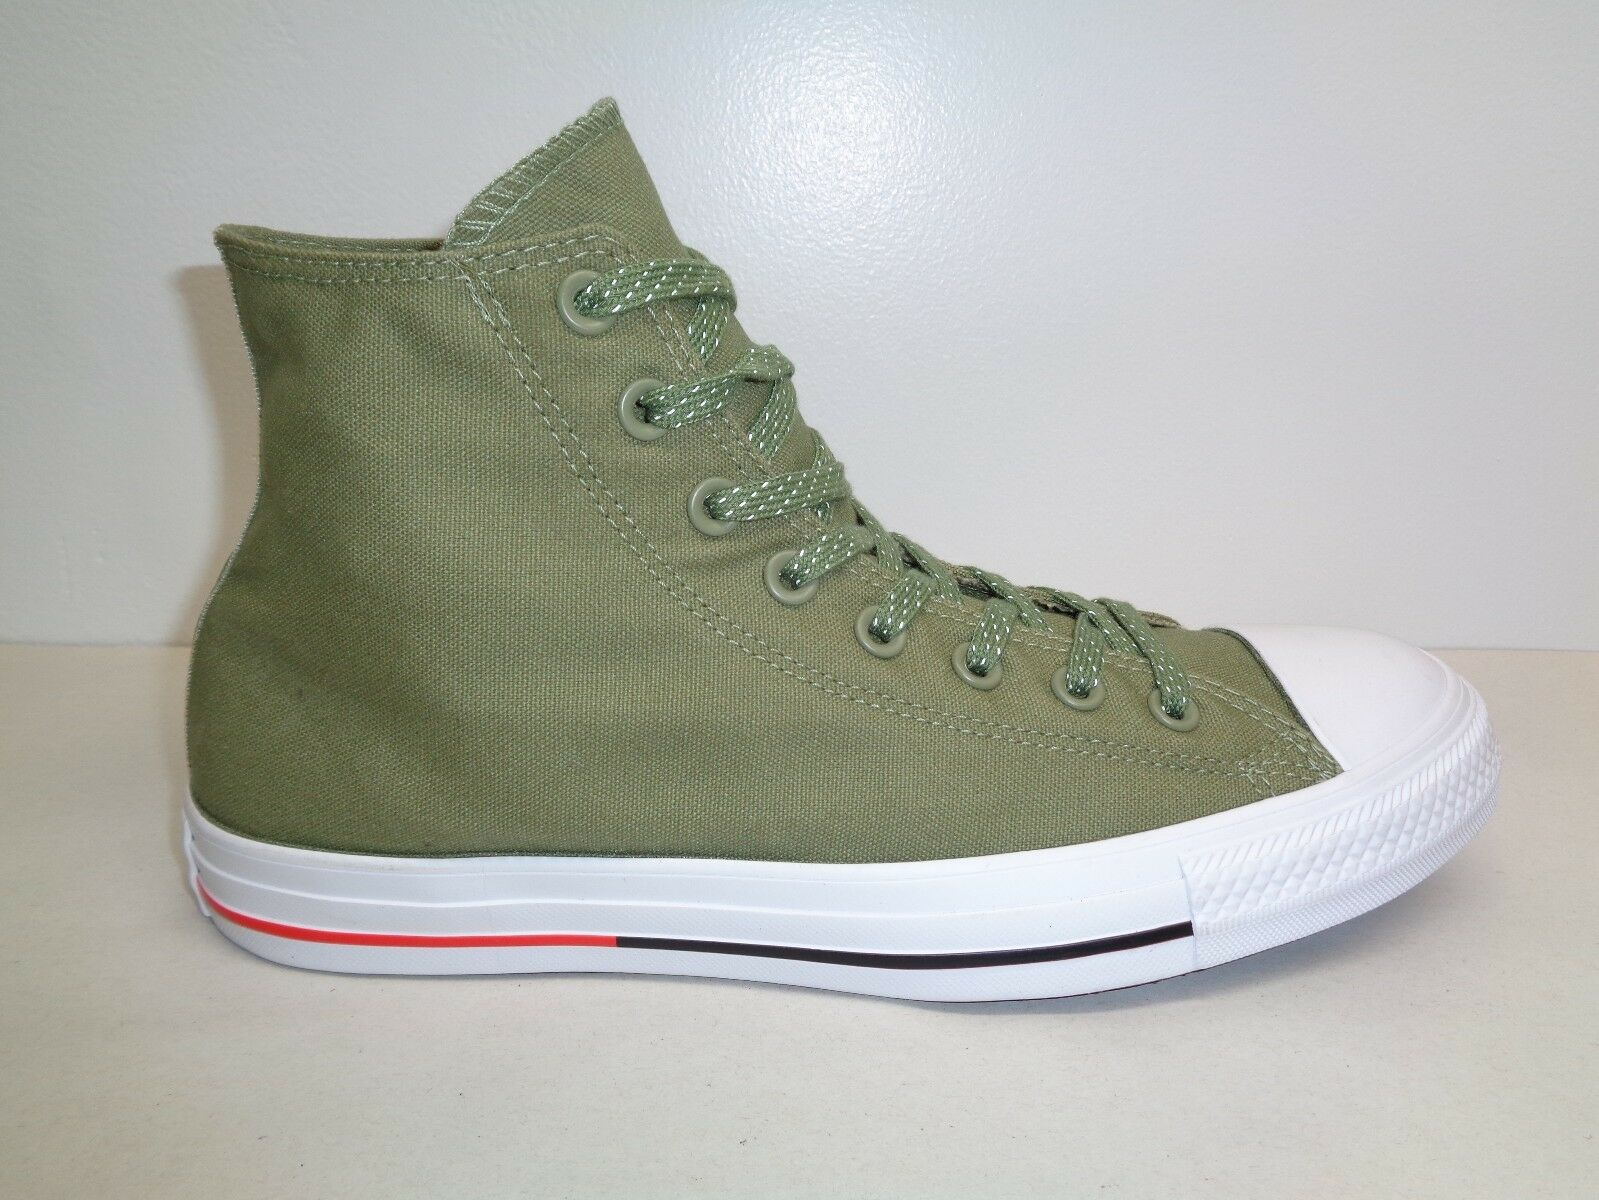 Converse Size 9 M CHUCK TAYLOR ALL STAR HI Fatigue Green Sneakers New Mens shoes